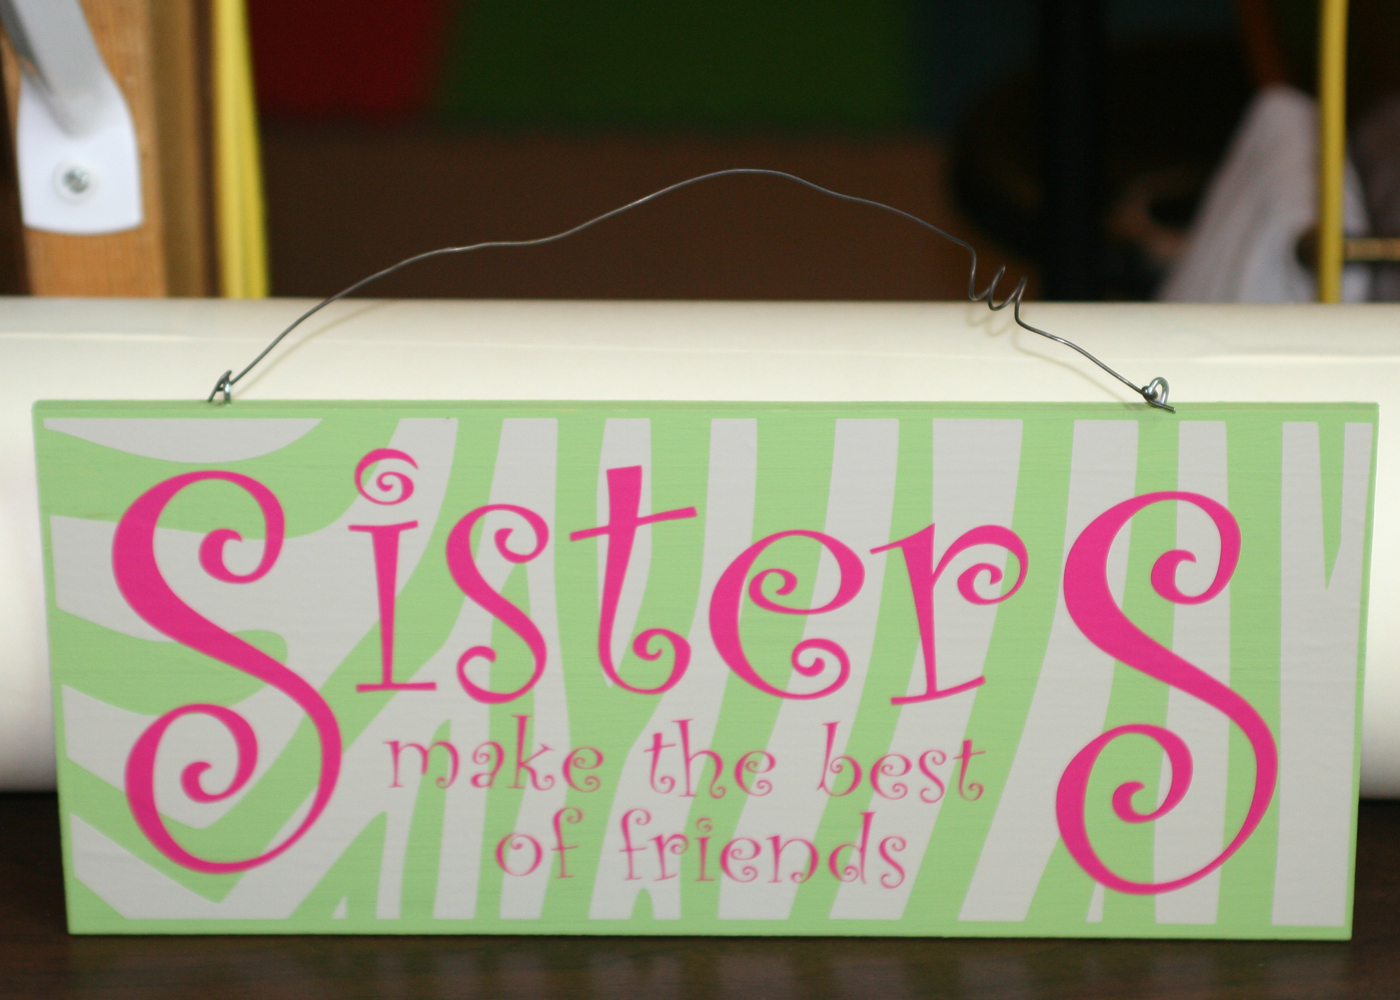 sisters-vinyl-decal-quote-on-board.jpg